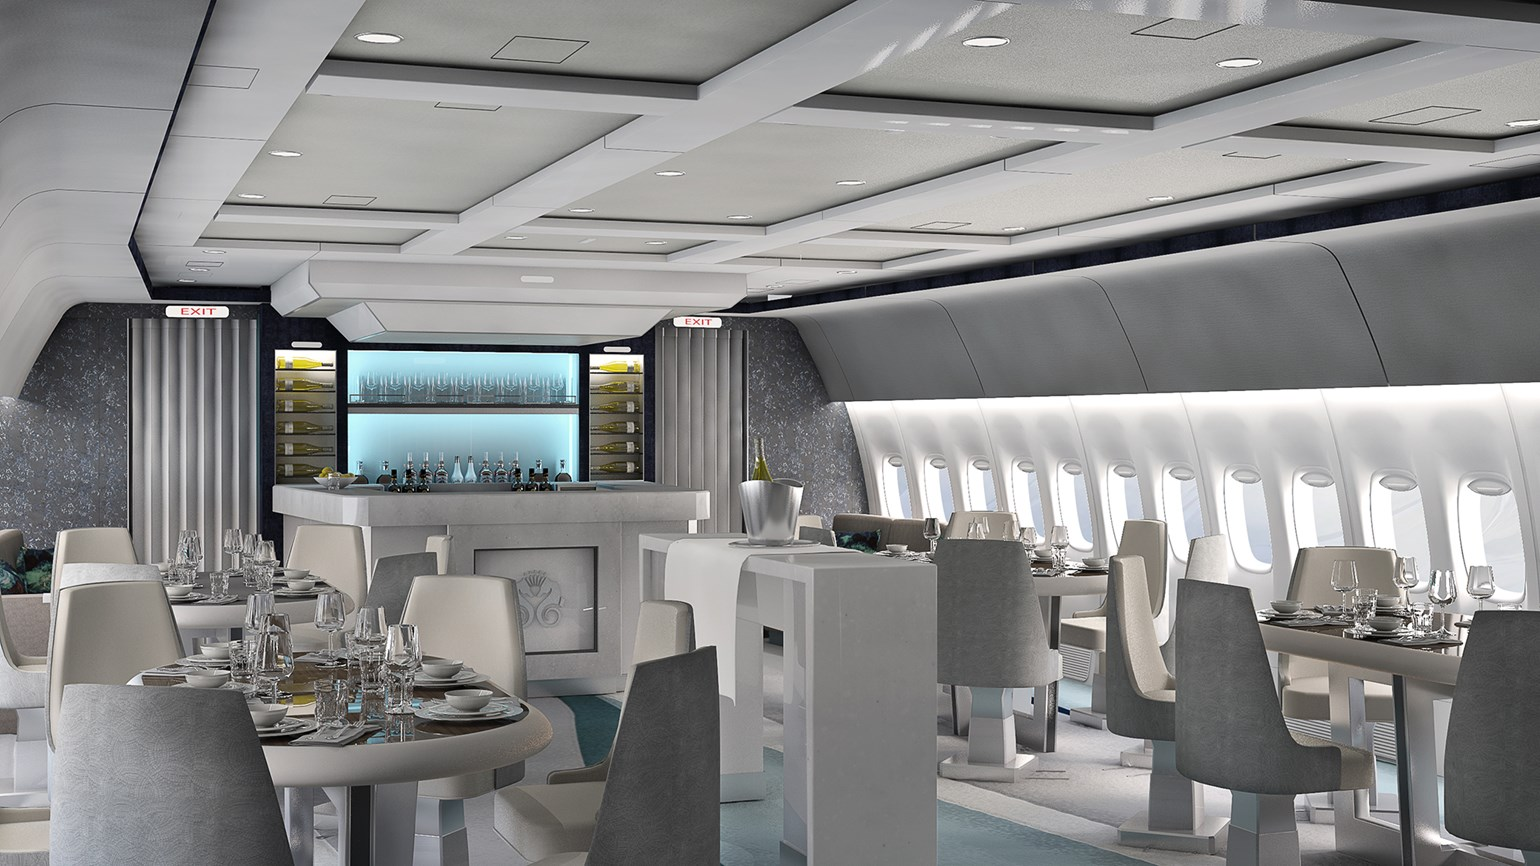 Crystal unveils jet interior for luxury air tours